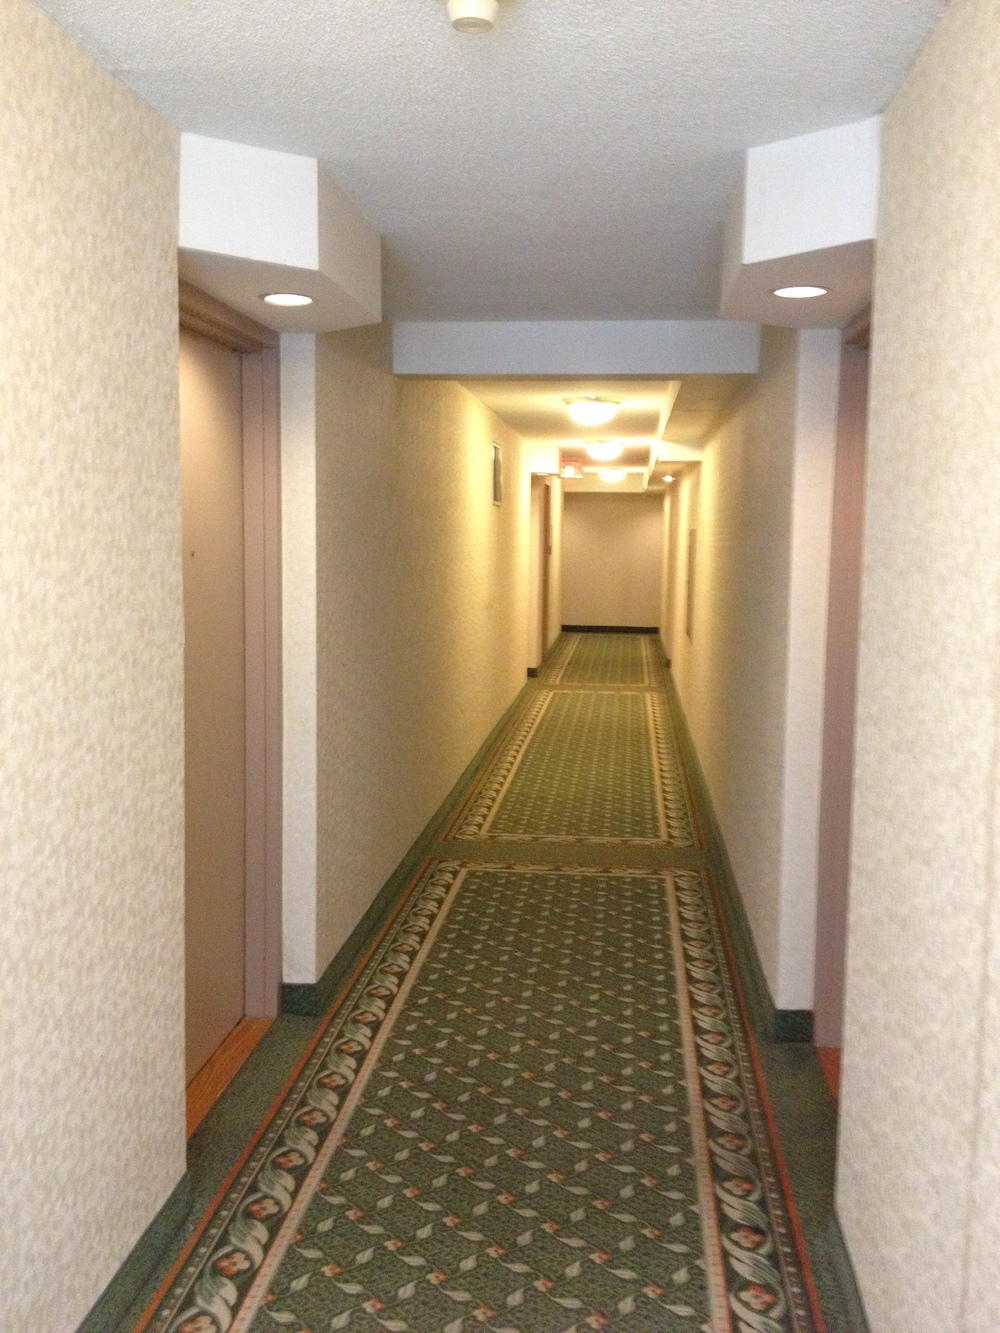 Existing Typical Corridor